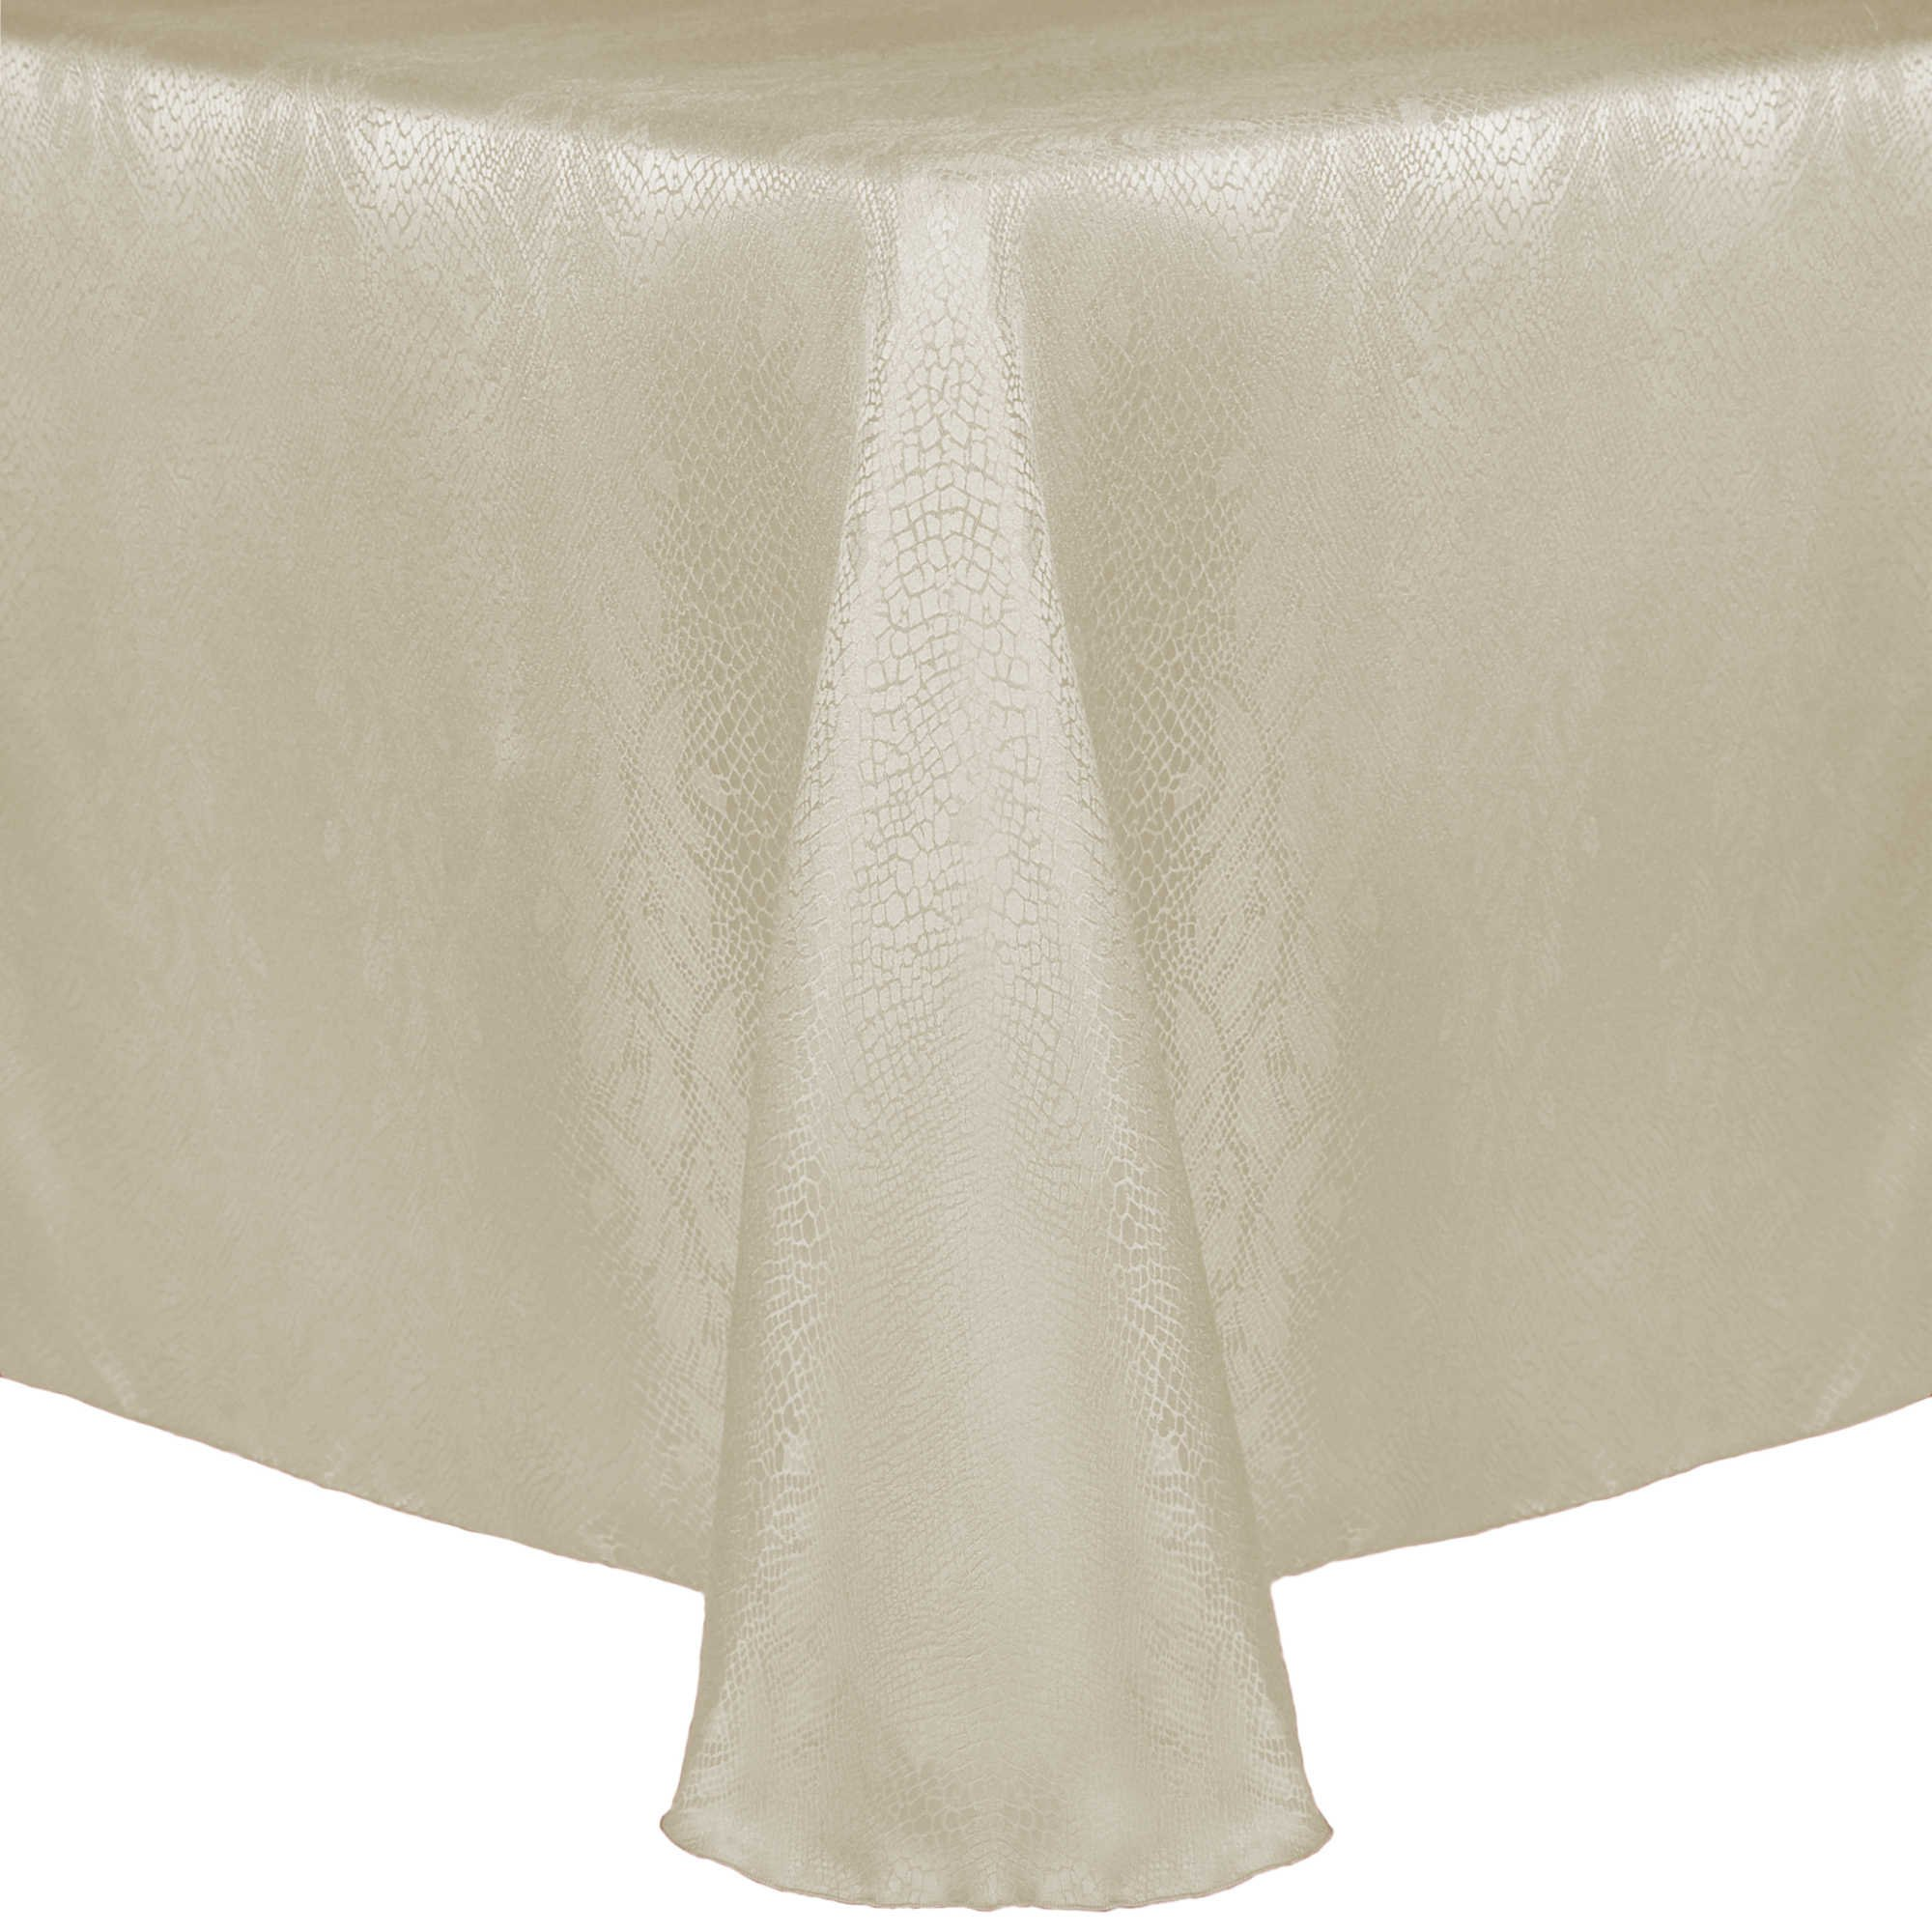 Ultimate Textile (3 Pack) Damask Kenya 70 x 144-Inch Oval Tablecloth - Home Dining Collection - Snakeskin Jacquard Design, Natural Ivory Cream